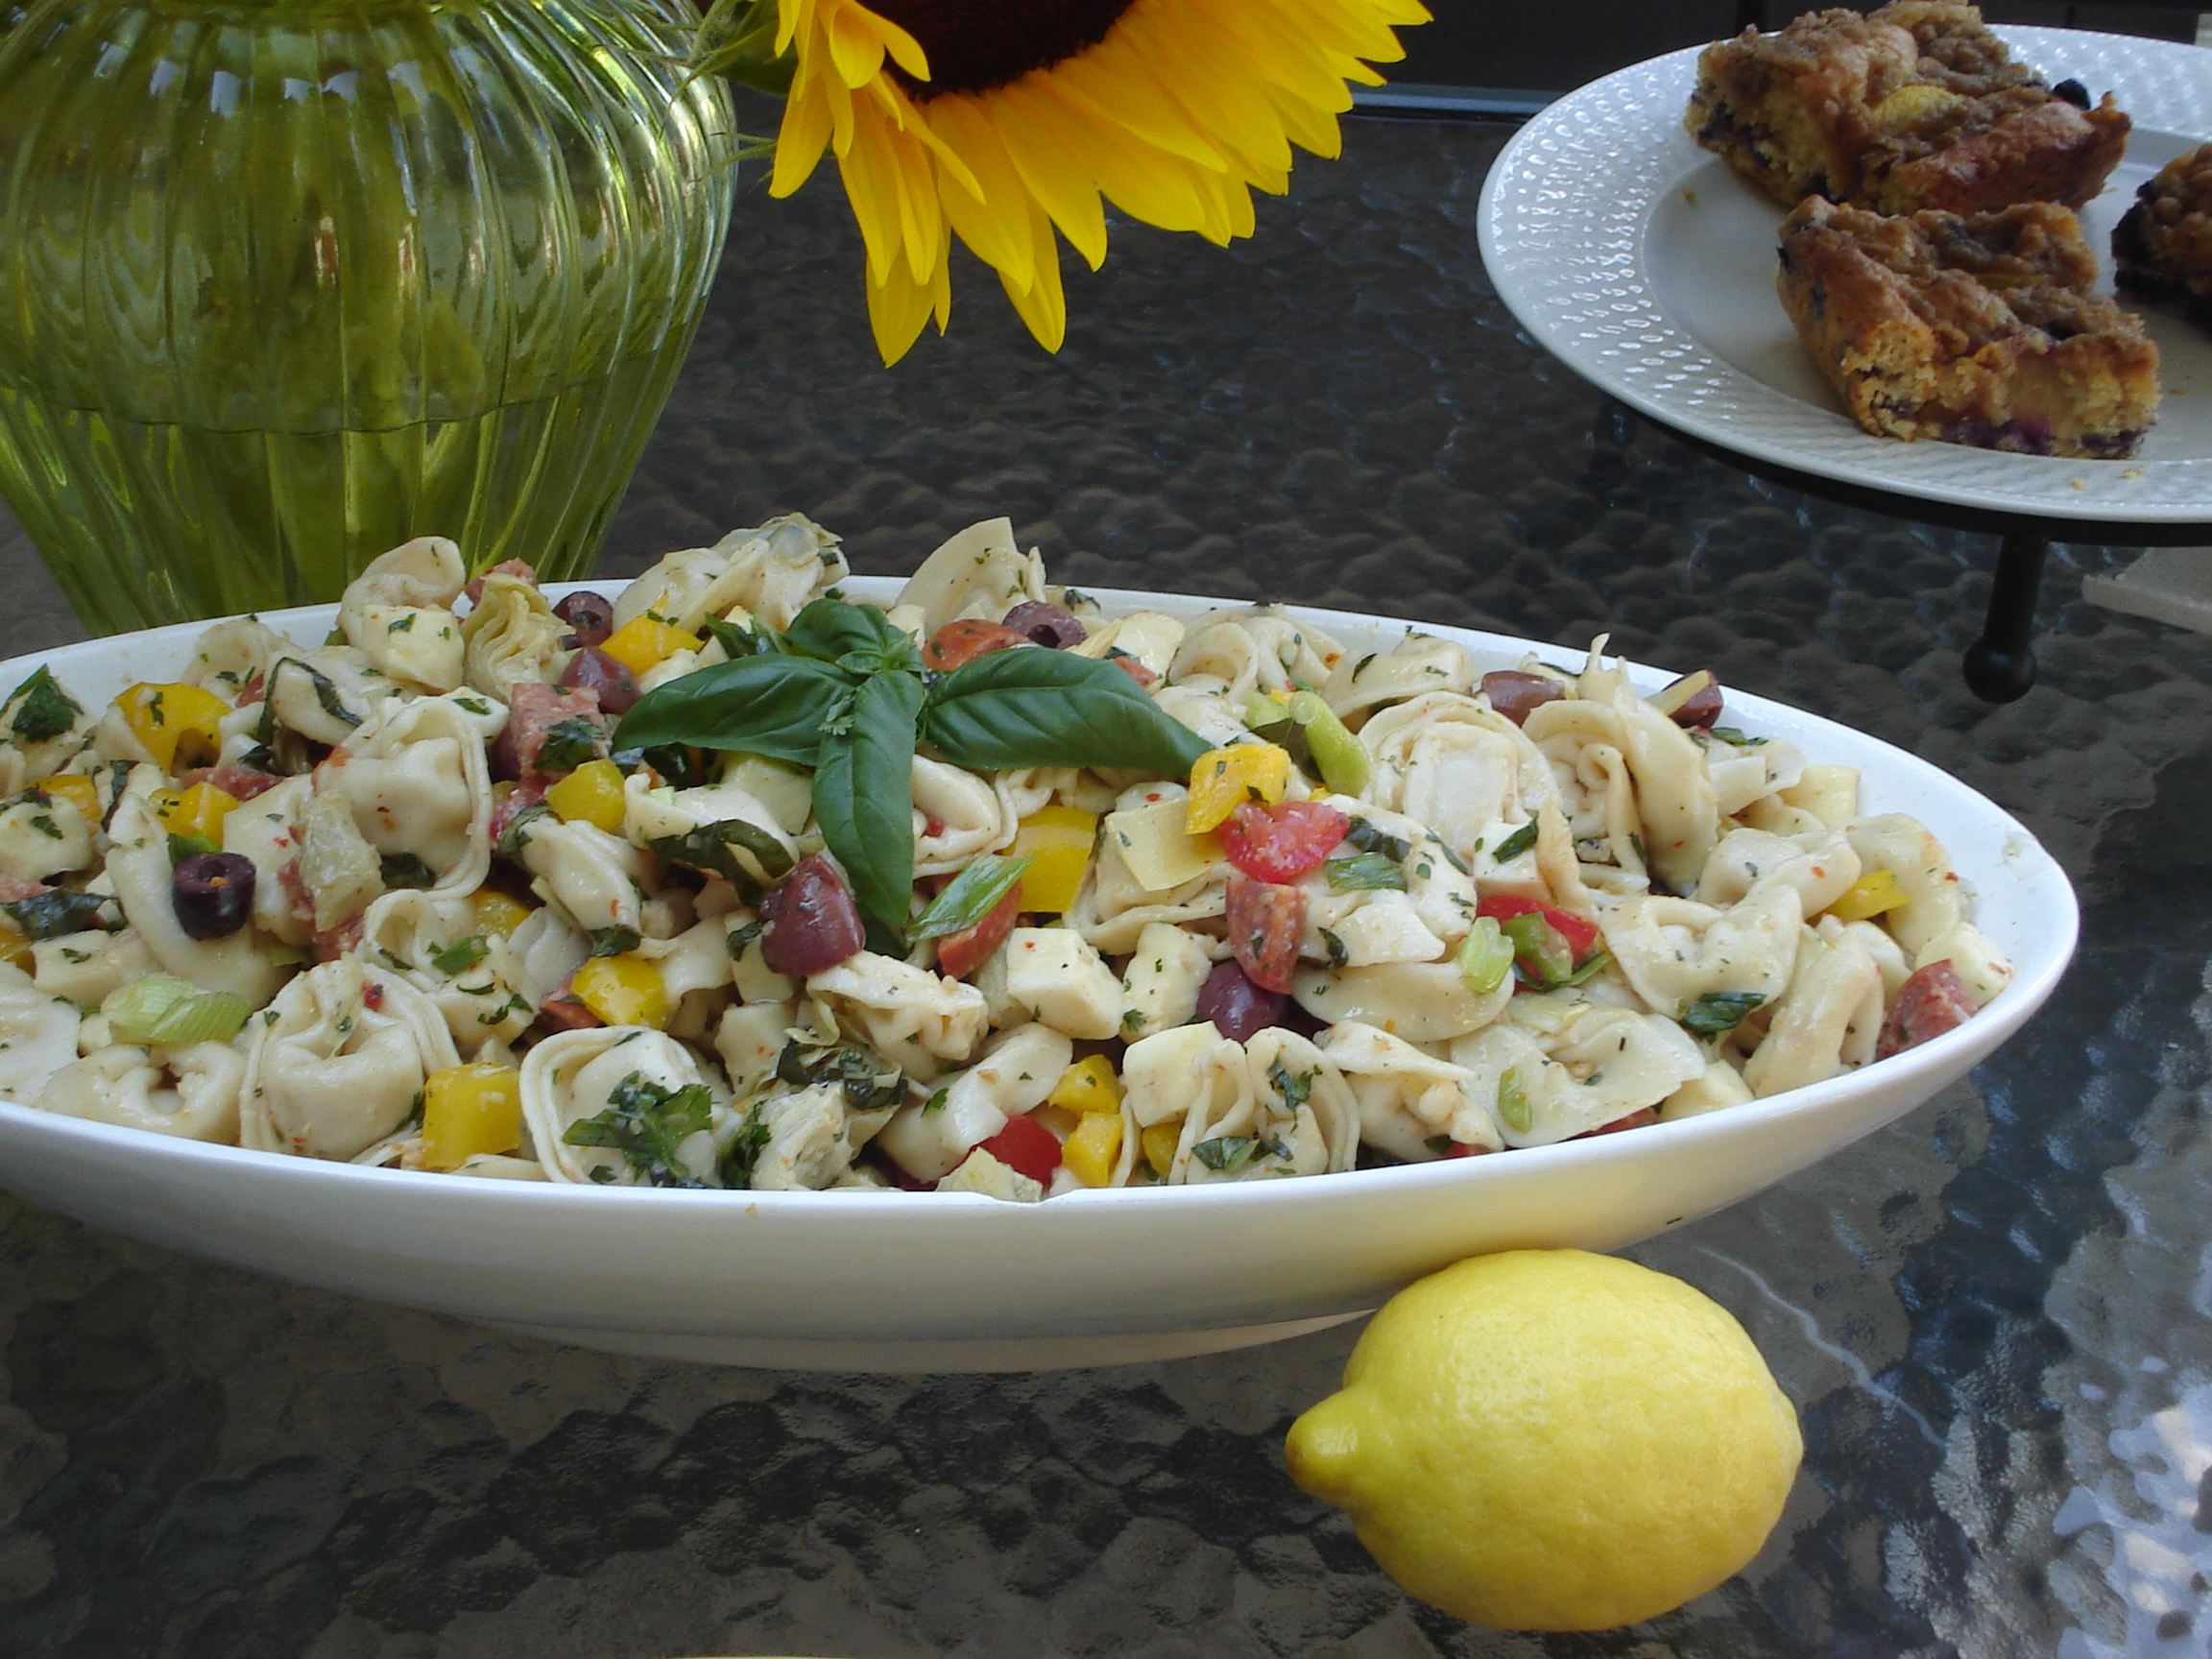 Home » Recipes » Sides » Kid-Friendly Side: Zesty Tortellini Salad